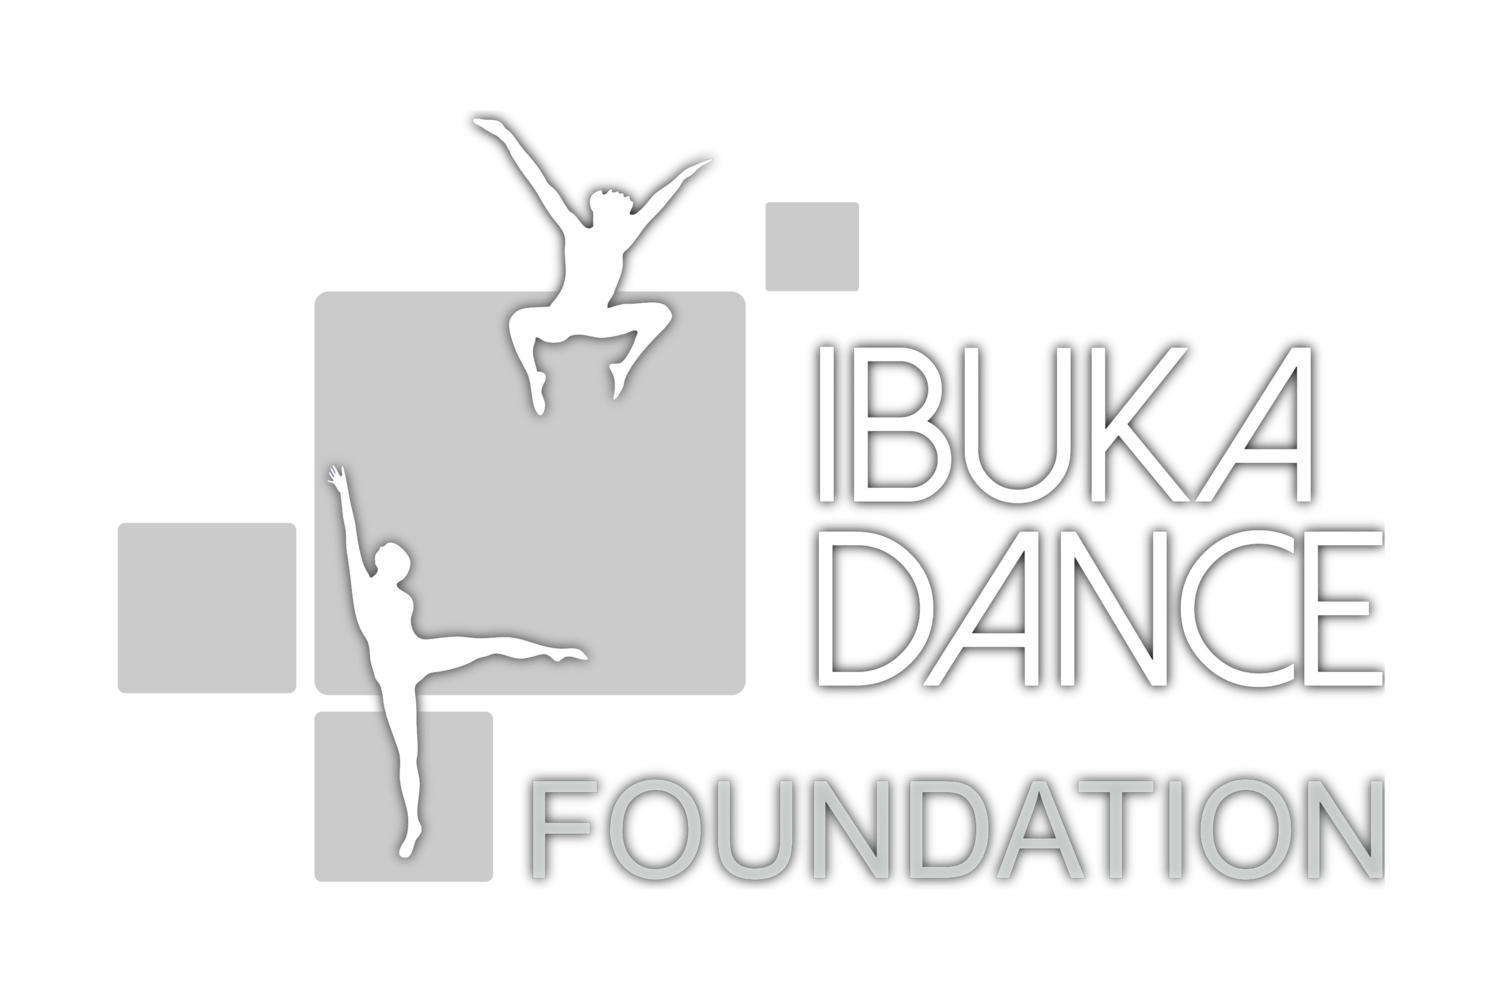 Ibuka Dance foundation